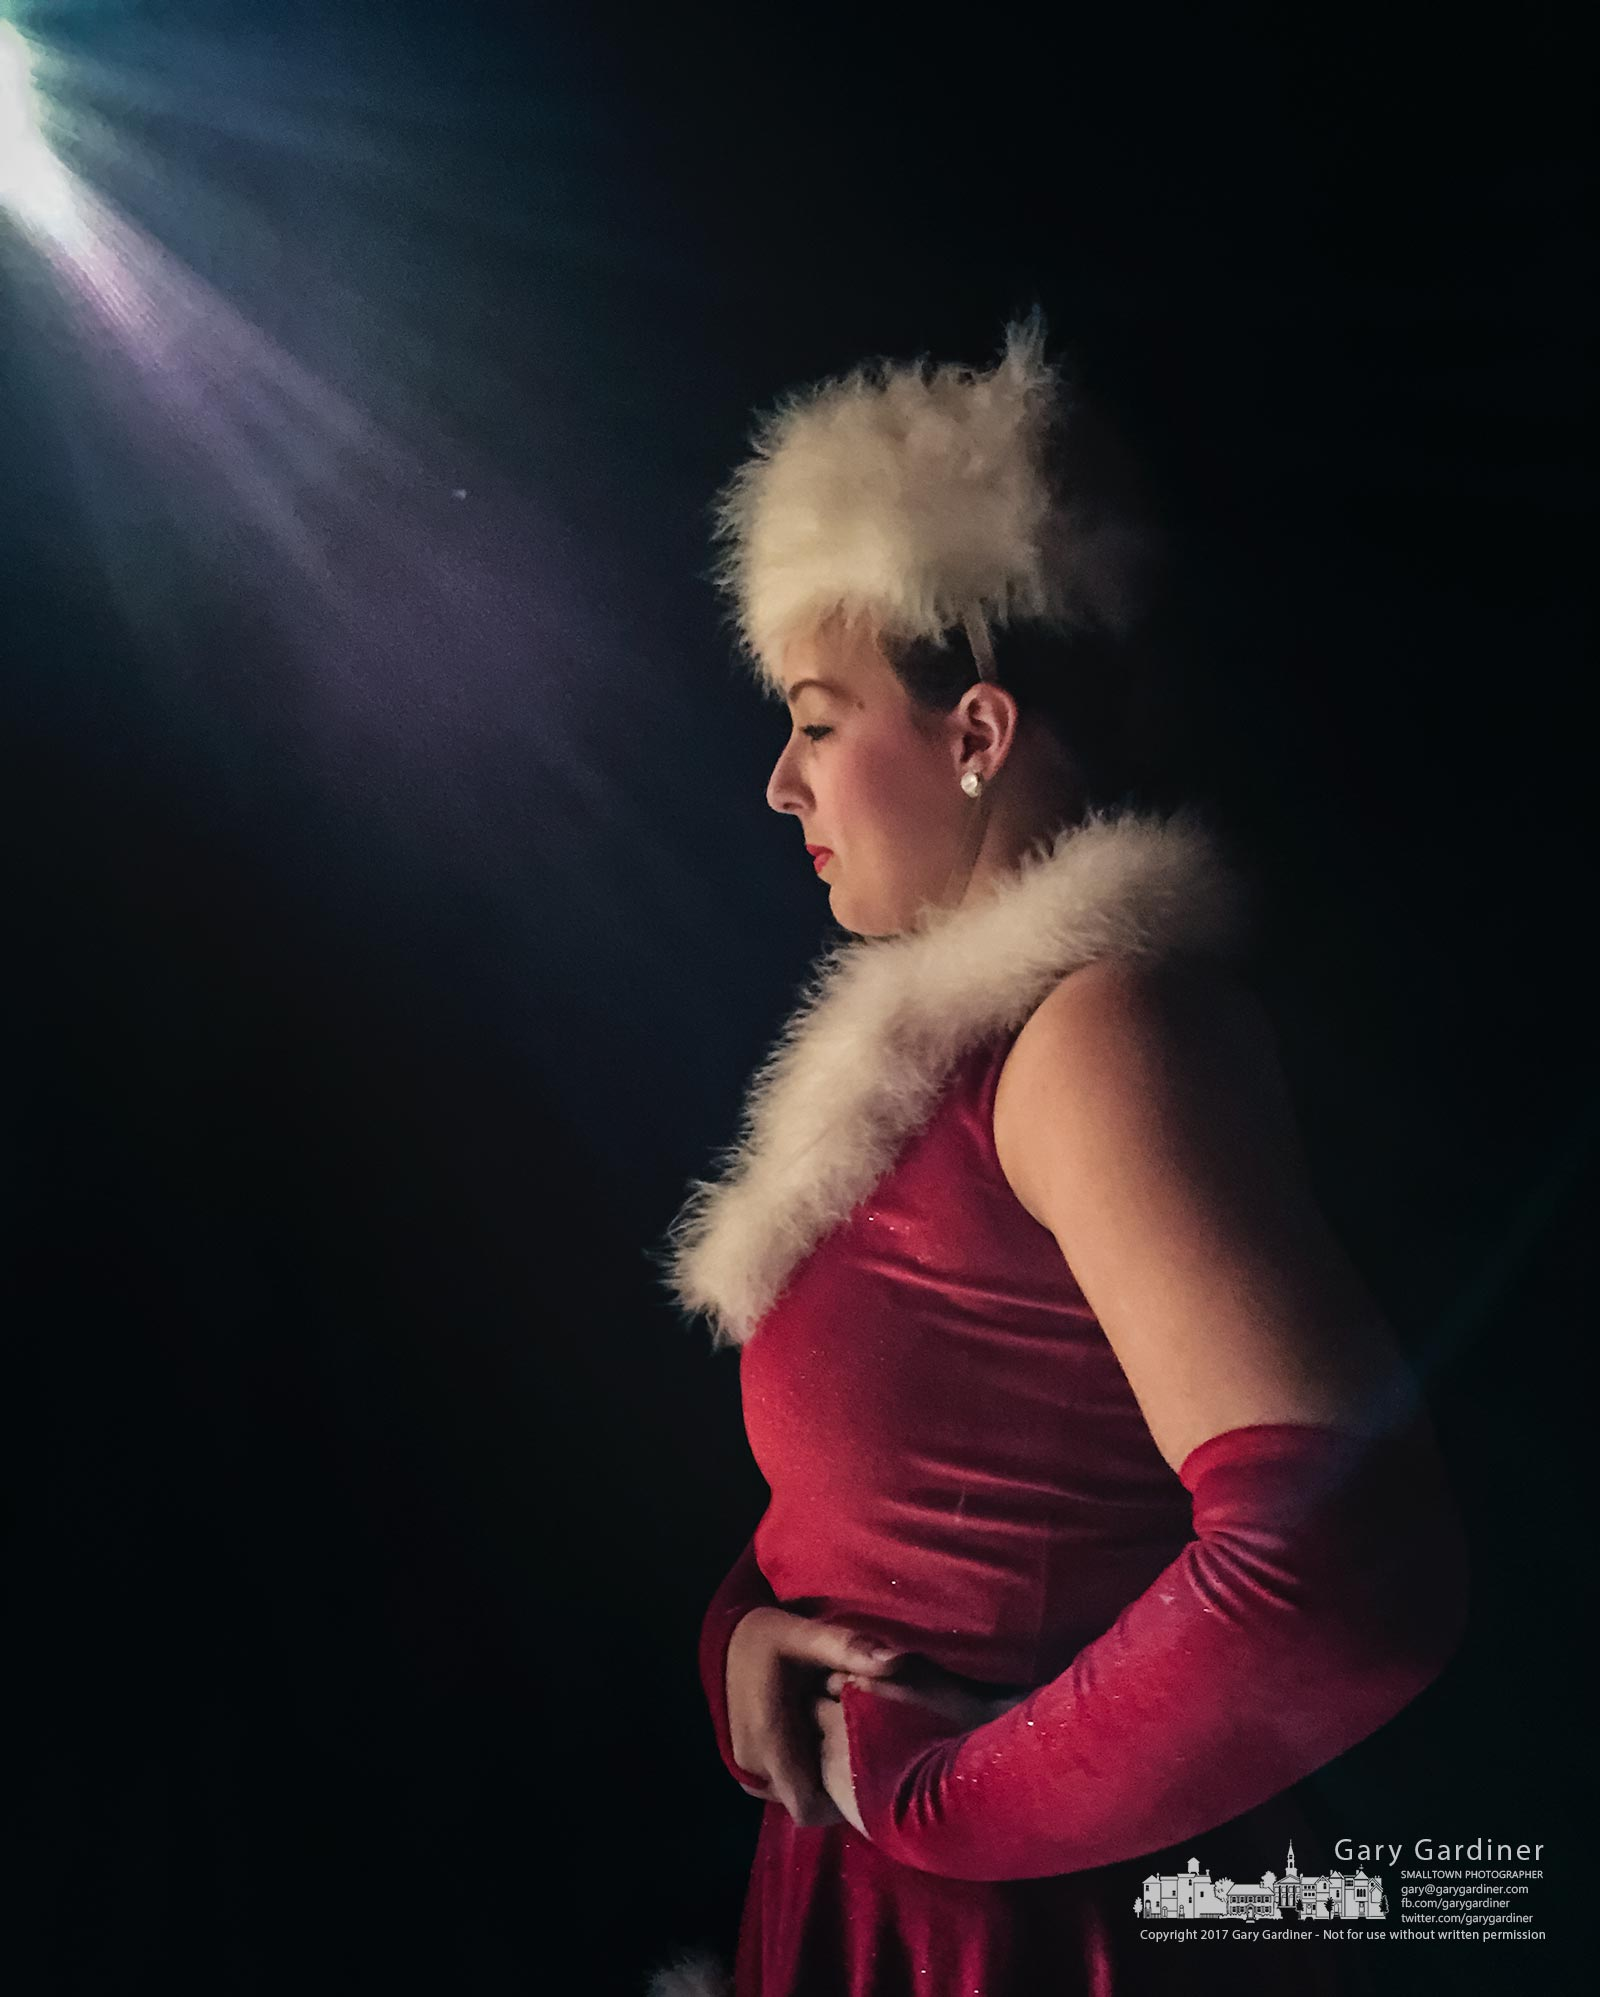 A Generations Performing Arts Center dancer stands in the wings waiting for her cue to enter the stage during dress rehearsals for there weekend Christmas  performances. My Finall Photo for Dec. 5, 2017.